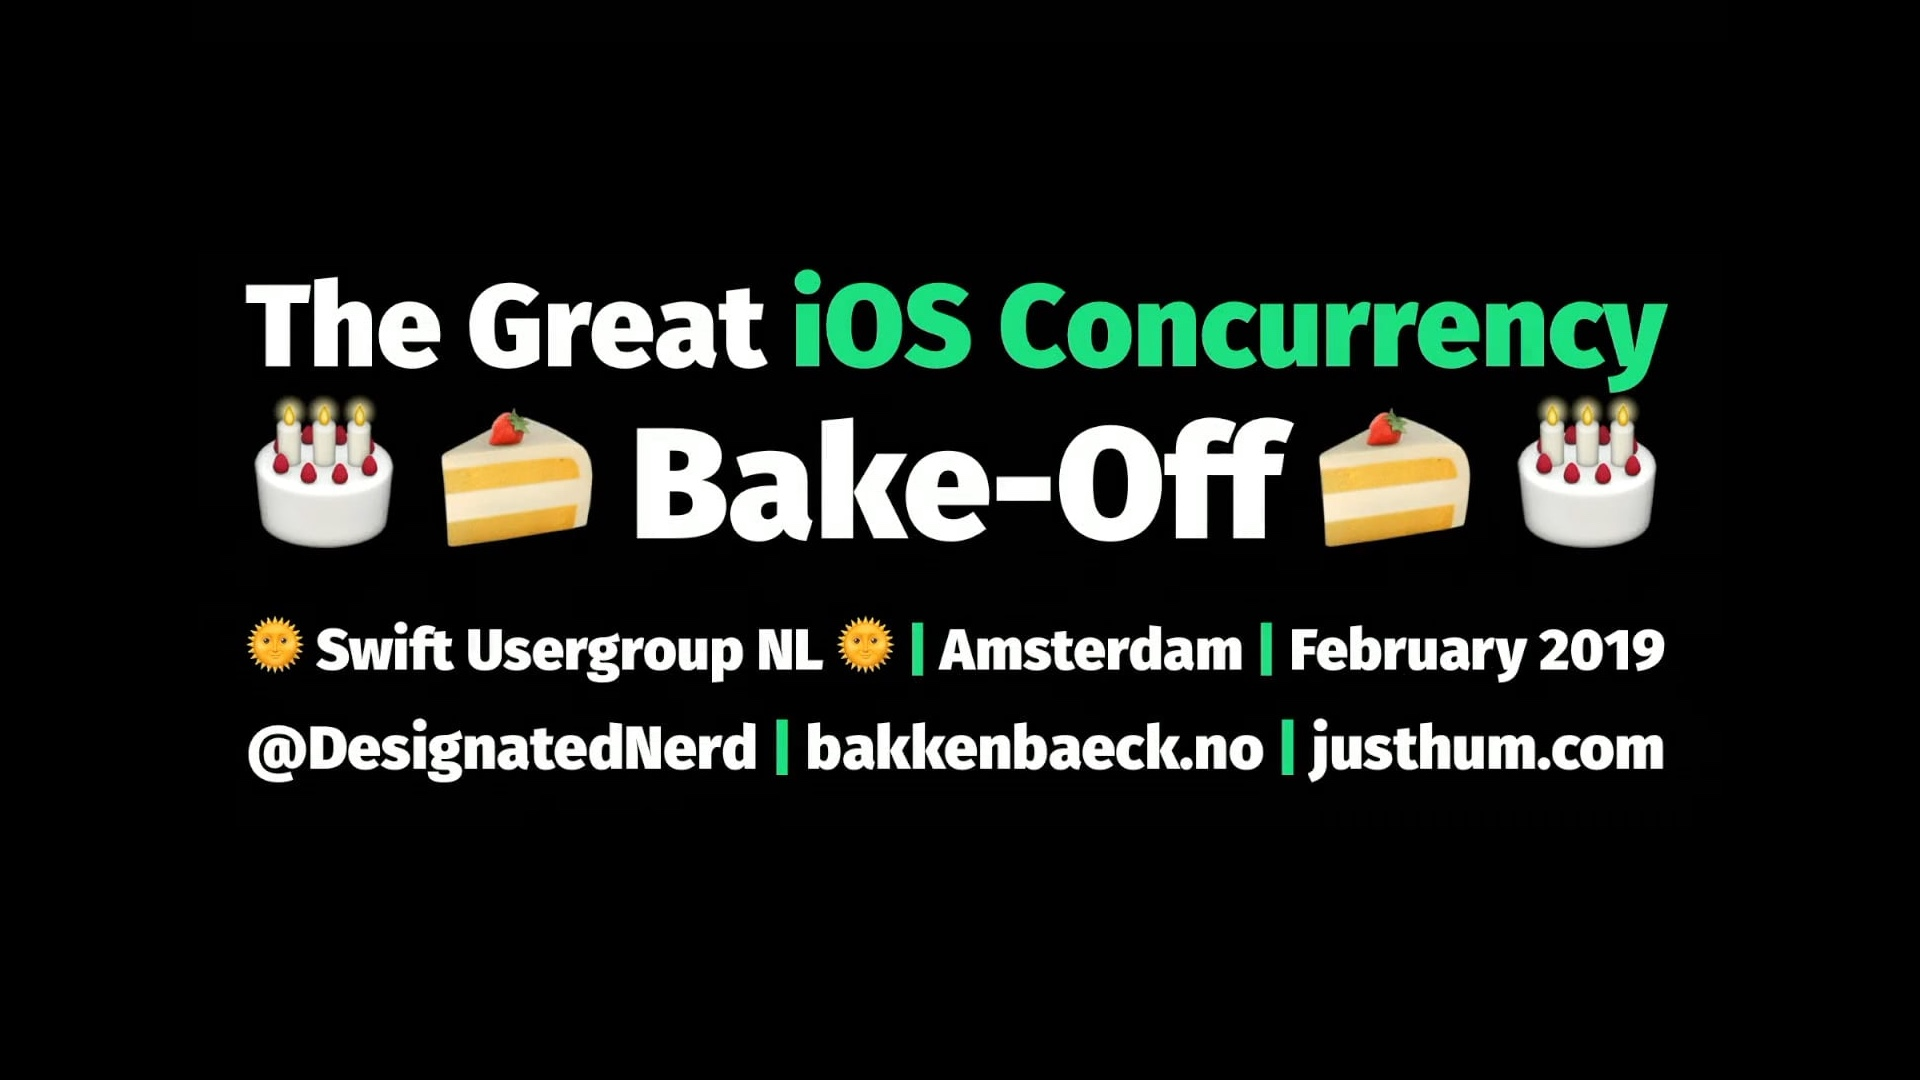 The Great iOS Concurrency Bake-Off